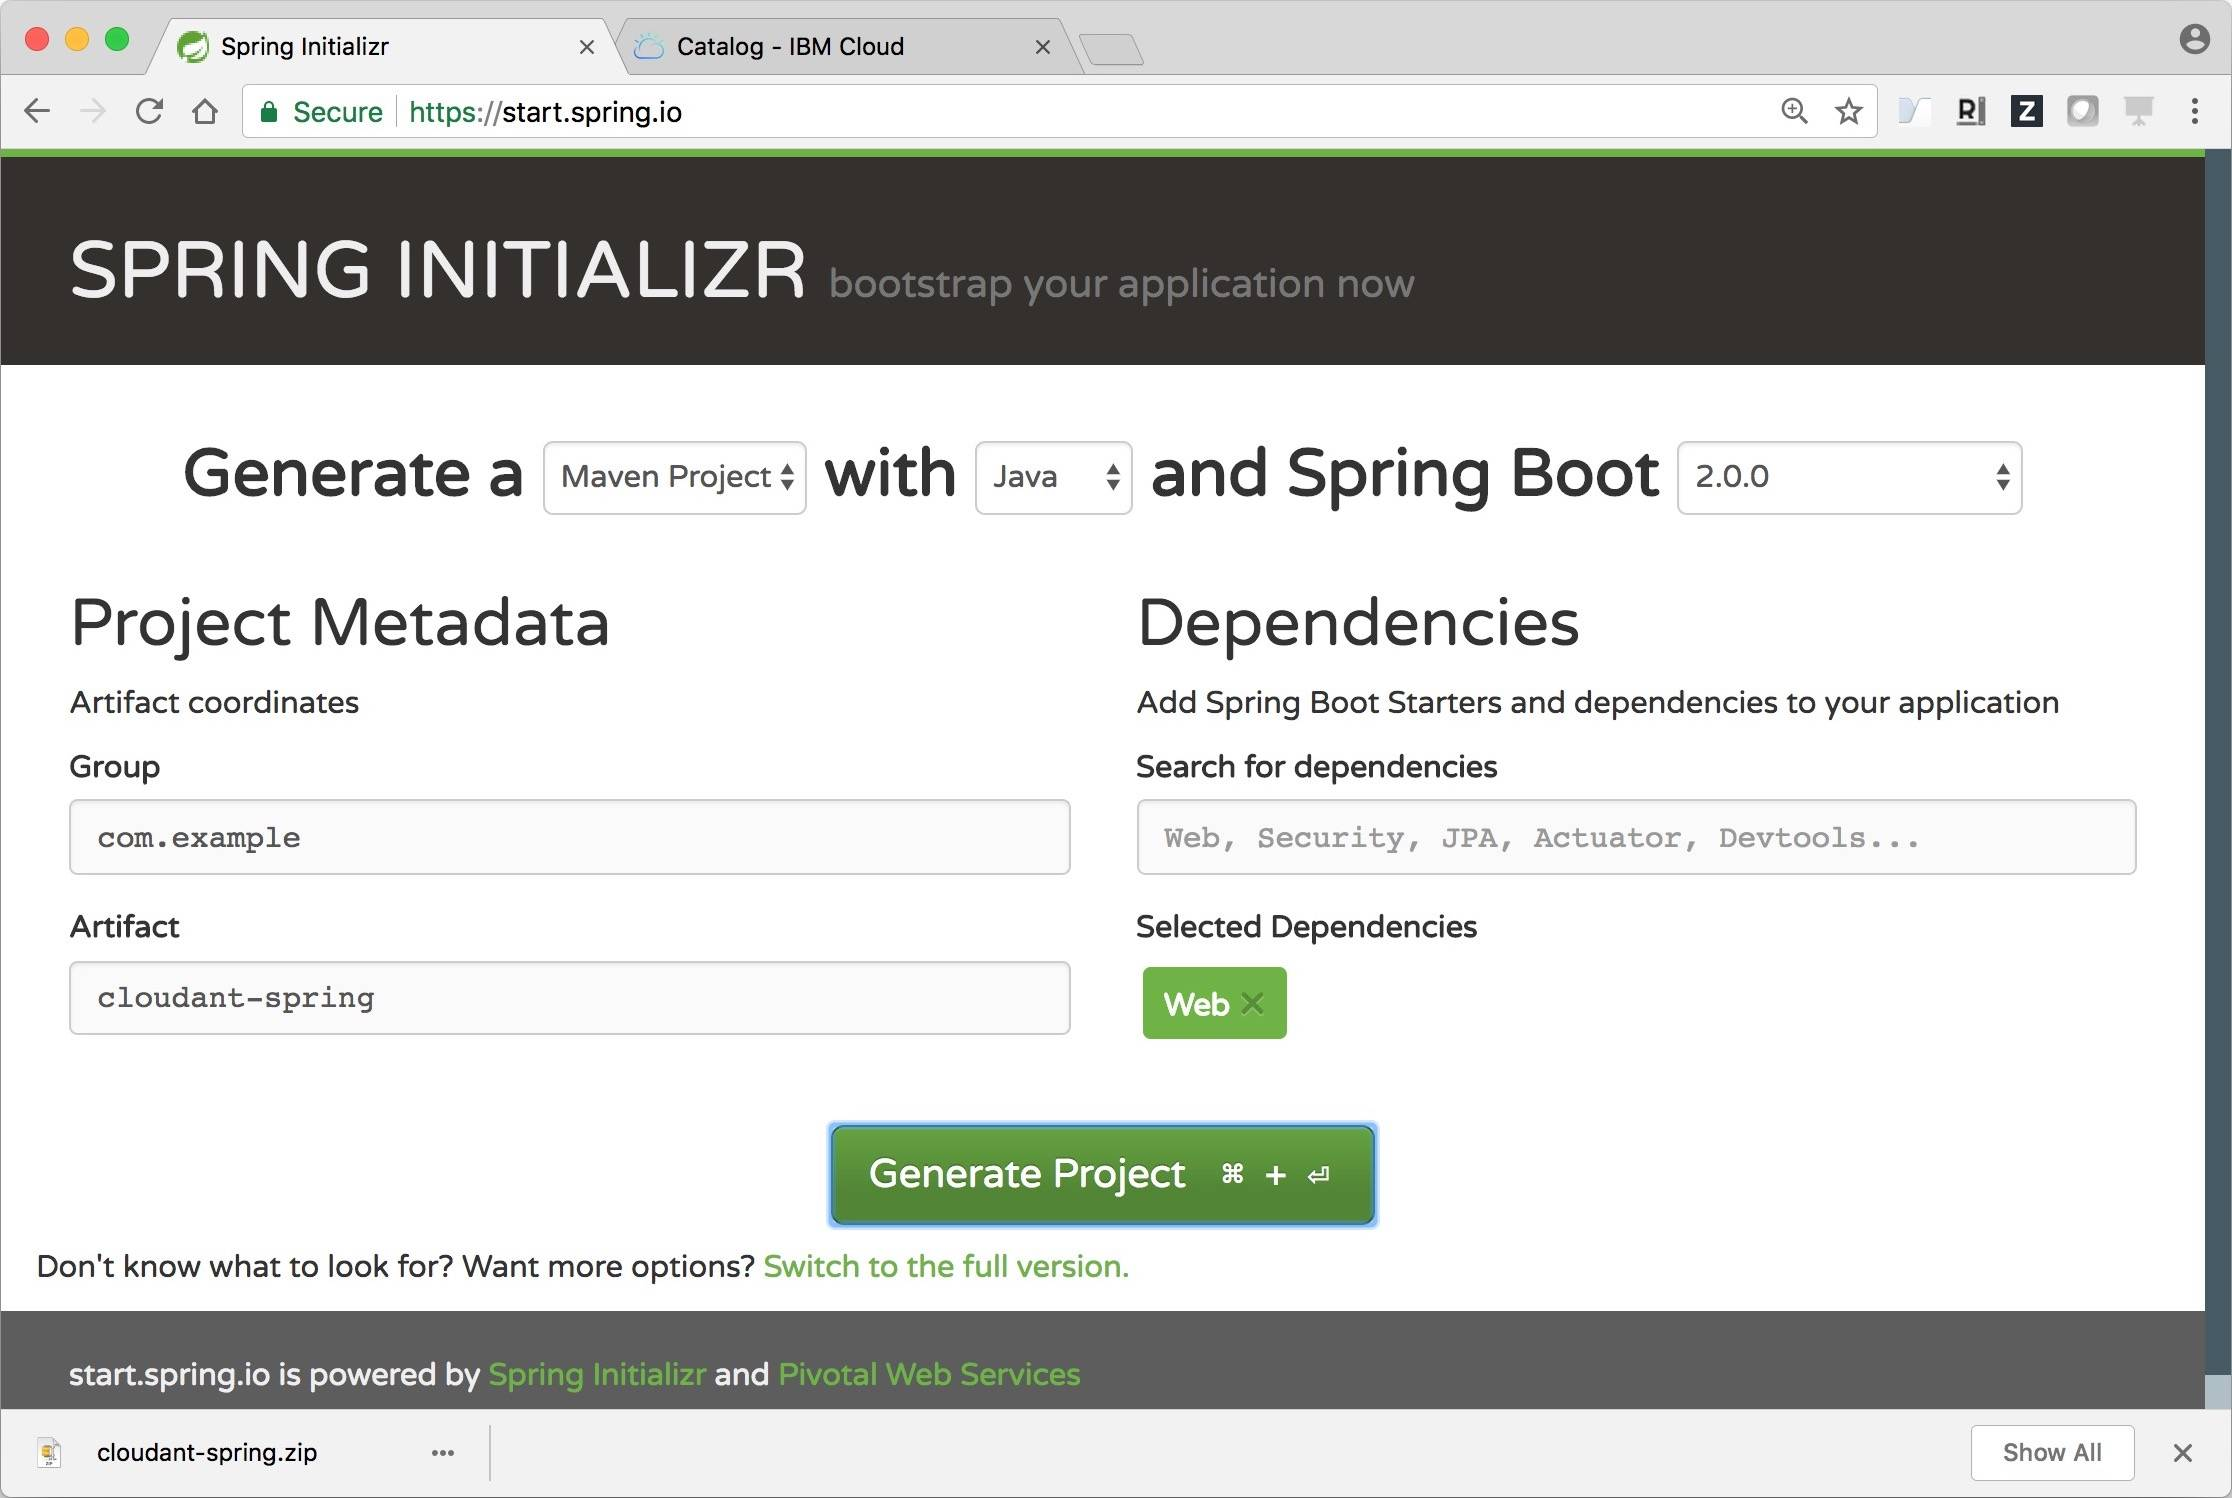 Use the Cloudant Spring Boot Starter to